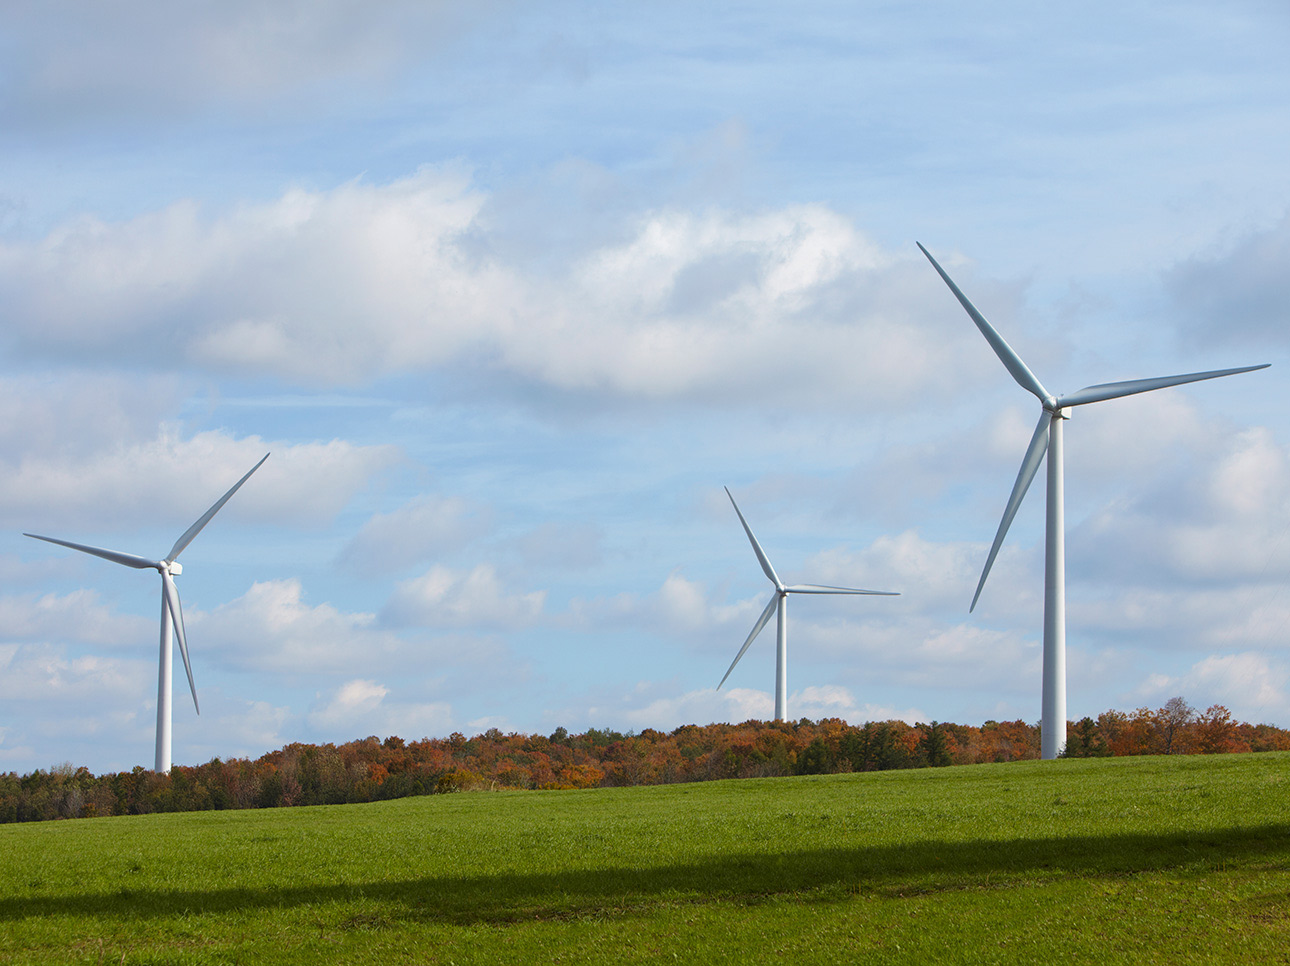 Three wind turbines in a large field